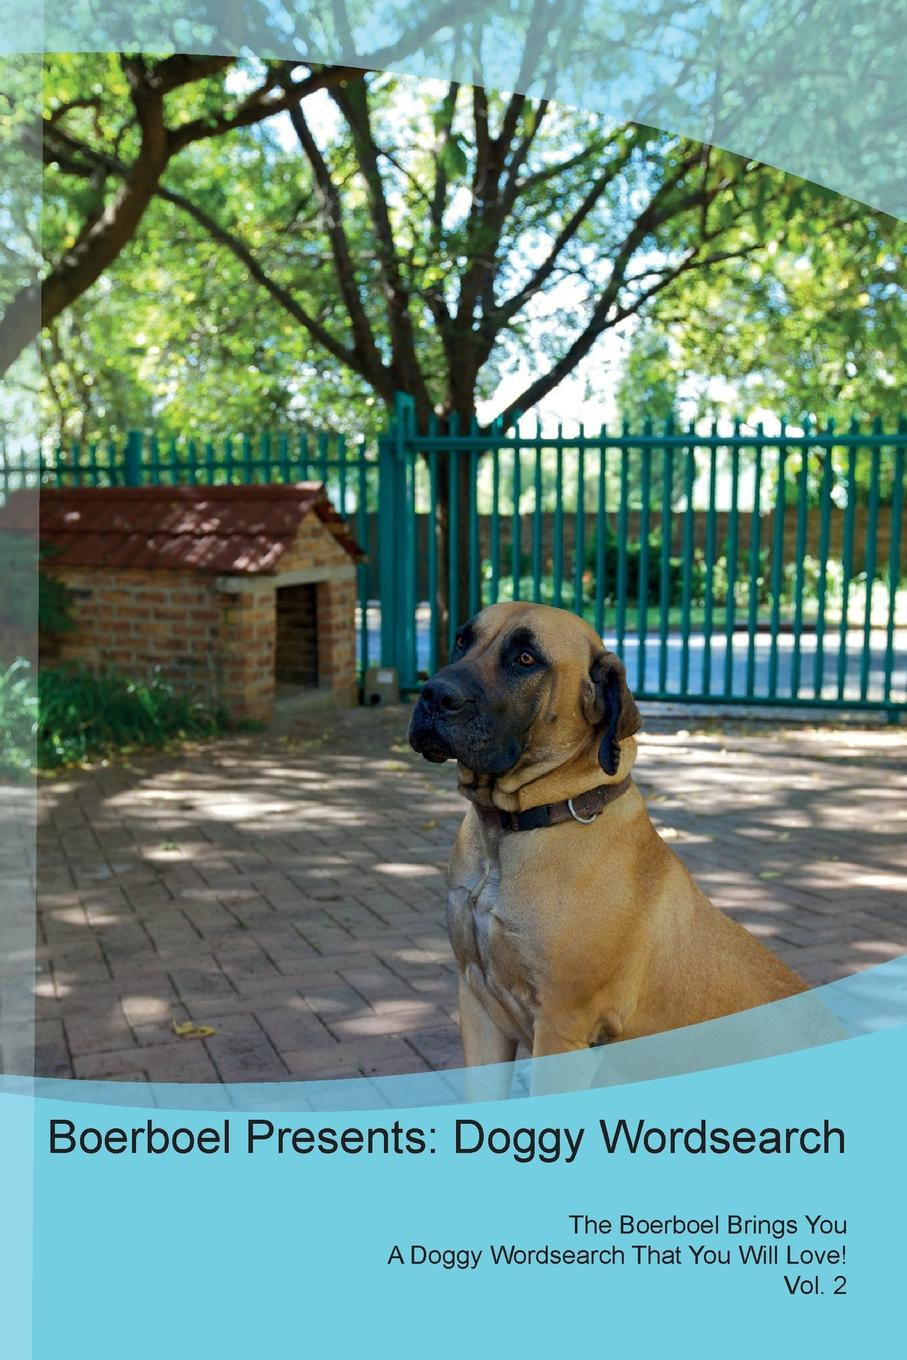 Фото - Doggy Puzzles Boerboel Presents. Doggy Wordsearch The Boerboel Brings You A Doggy Wordsearch That You Will Love! Vol. 2 harry holstone boerboel the boerboel dog owner s manual boerboel dog care personality grooming health costs and feeding all included